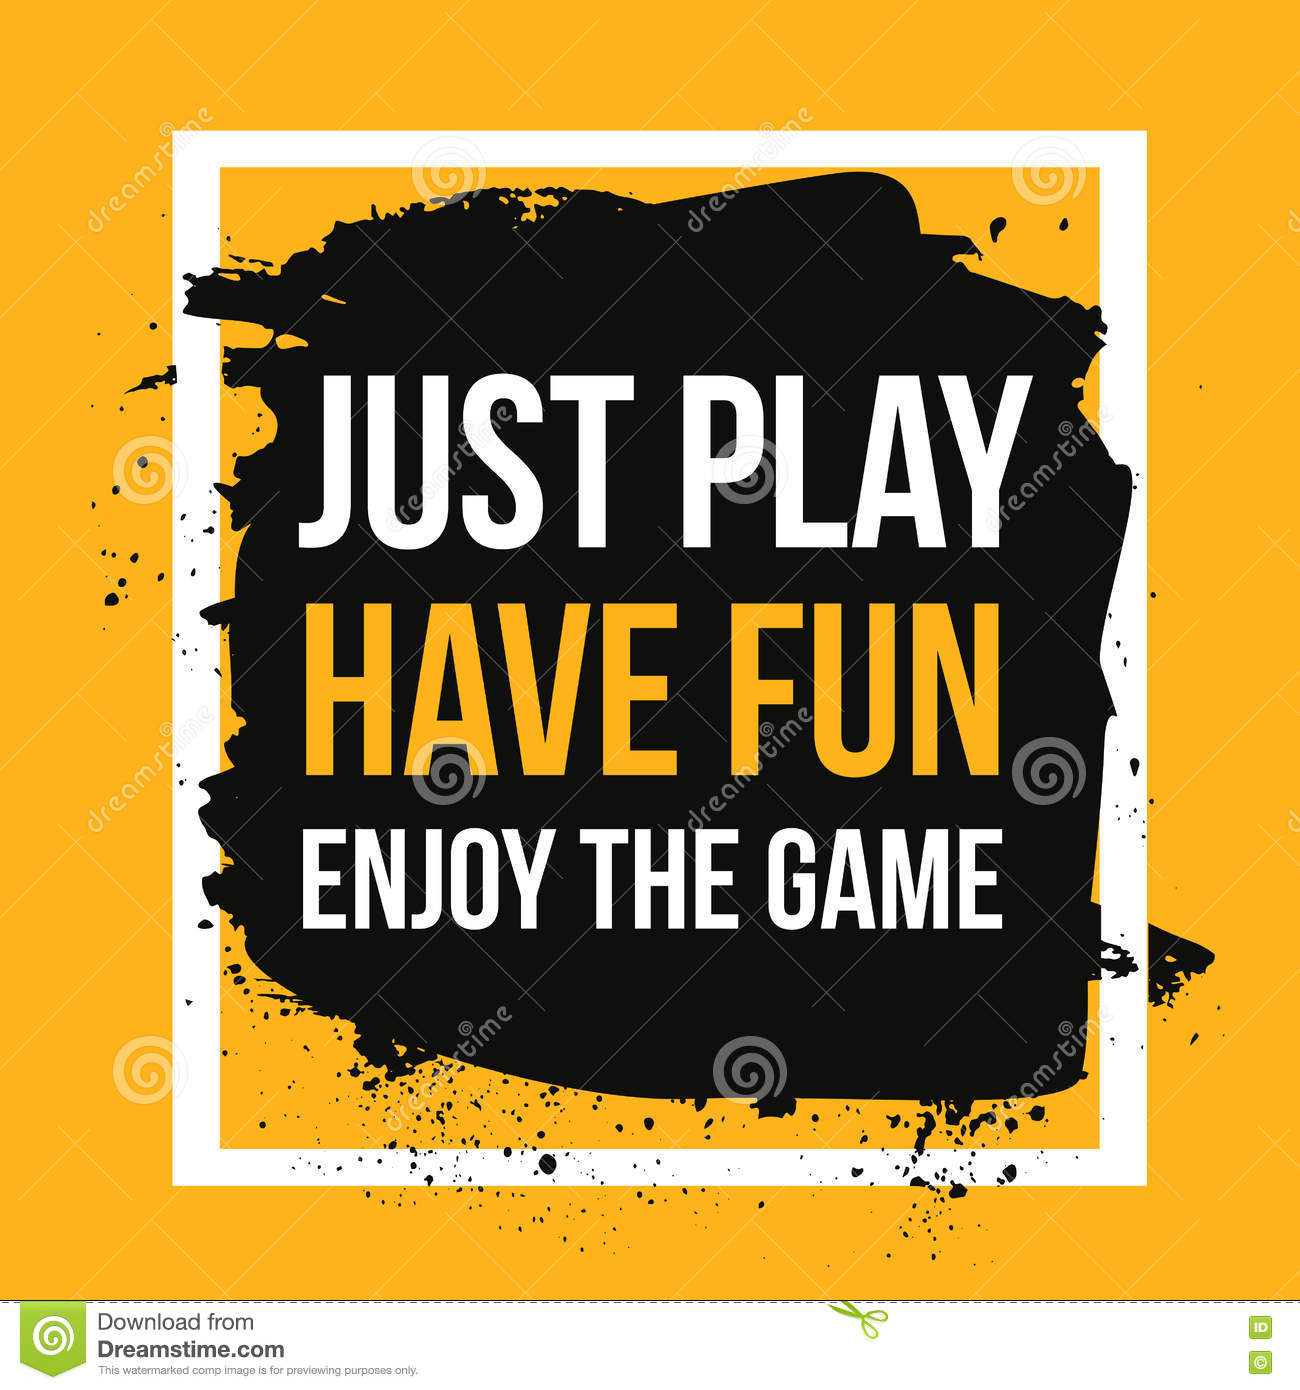 just play have fun enjoy the game